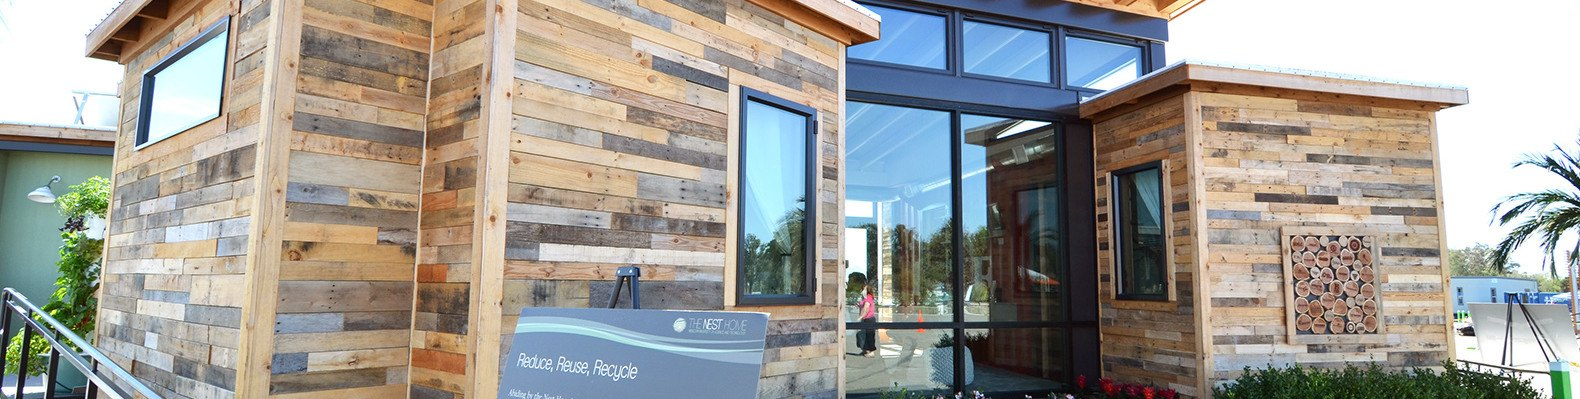 The Nest home is a solar-powered prefab made from recycled shipping ...